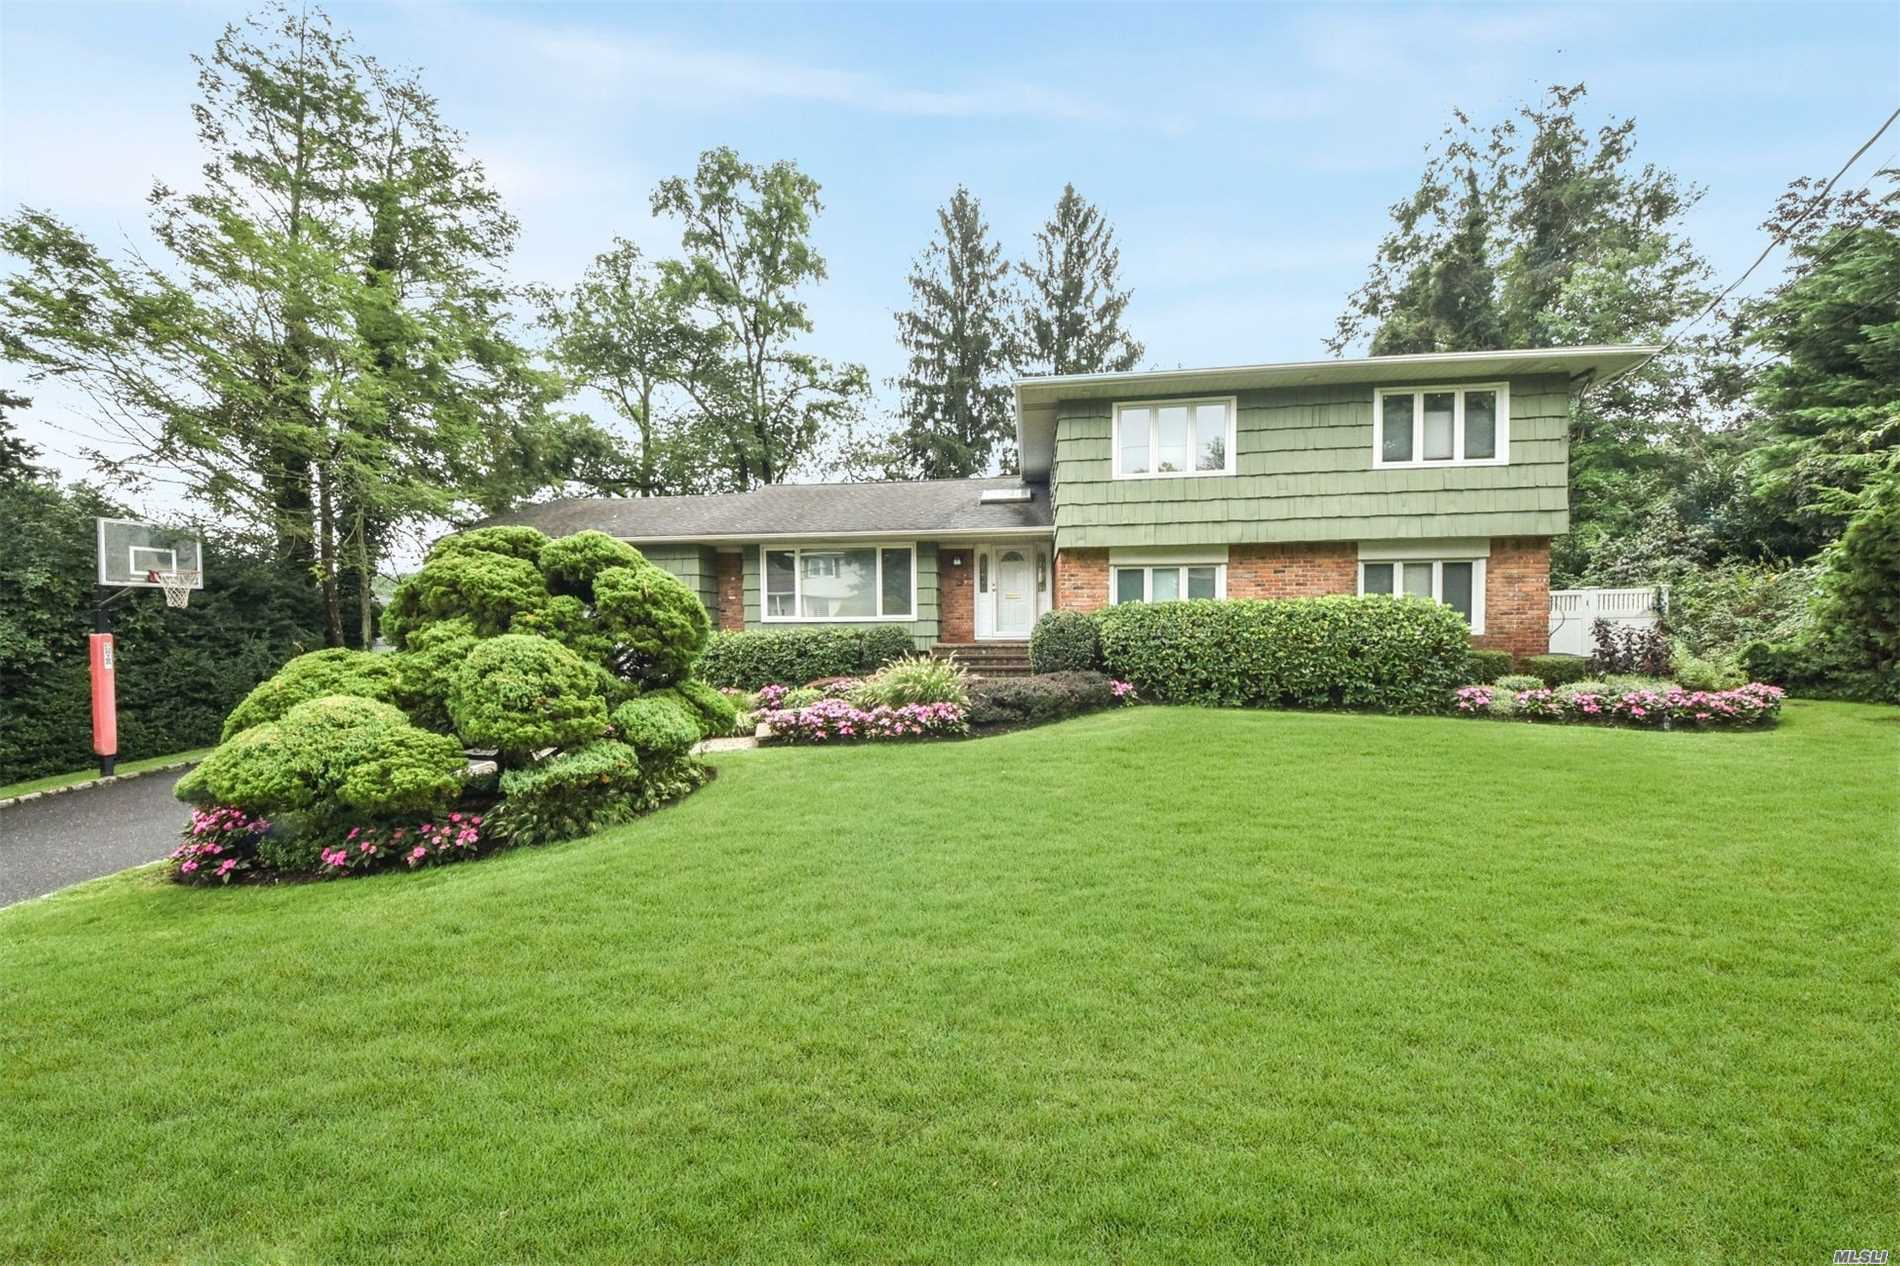 This Colonial Split In Perfect Midblk Loc. On Lush (Coastal Designs)Landscpd Property In The Washington Ave Area Features, 5 Lg Brs, 3 Updtd Bths, New Cac, Updated Granite Eik, 200+Amps, Hardwd, Ugs, Skylights, Vaulted Ceilings, Andersens, Pavered Walk And Patio, Brk Fpl.Jacuzzi/Hot Tub As Gift! Too Much To Mention.Taxes Being Grieved For The 1st Time. A Must See!!Price Improvement!